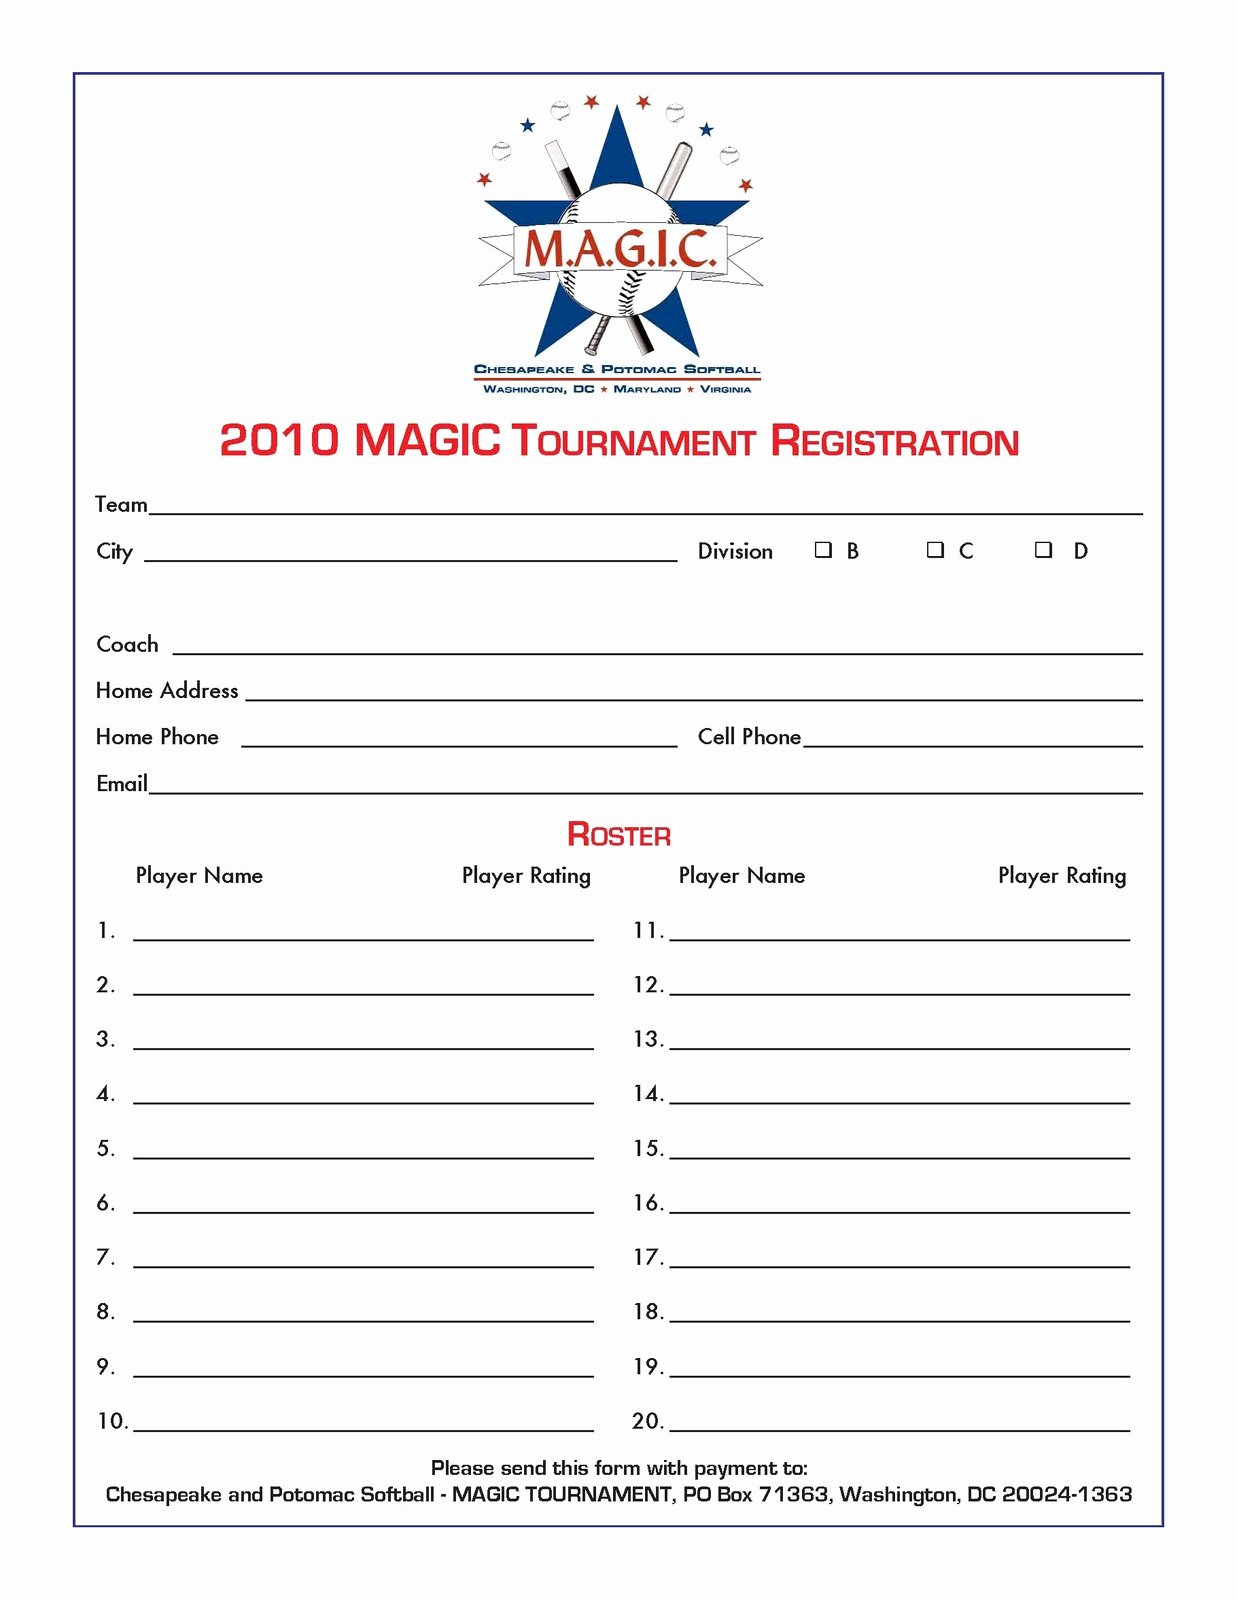 Template for Registration form Best Of Magic tournament July 2010